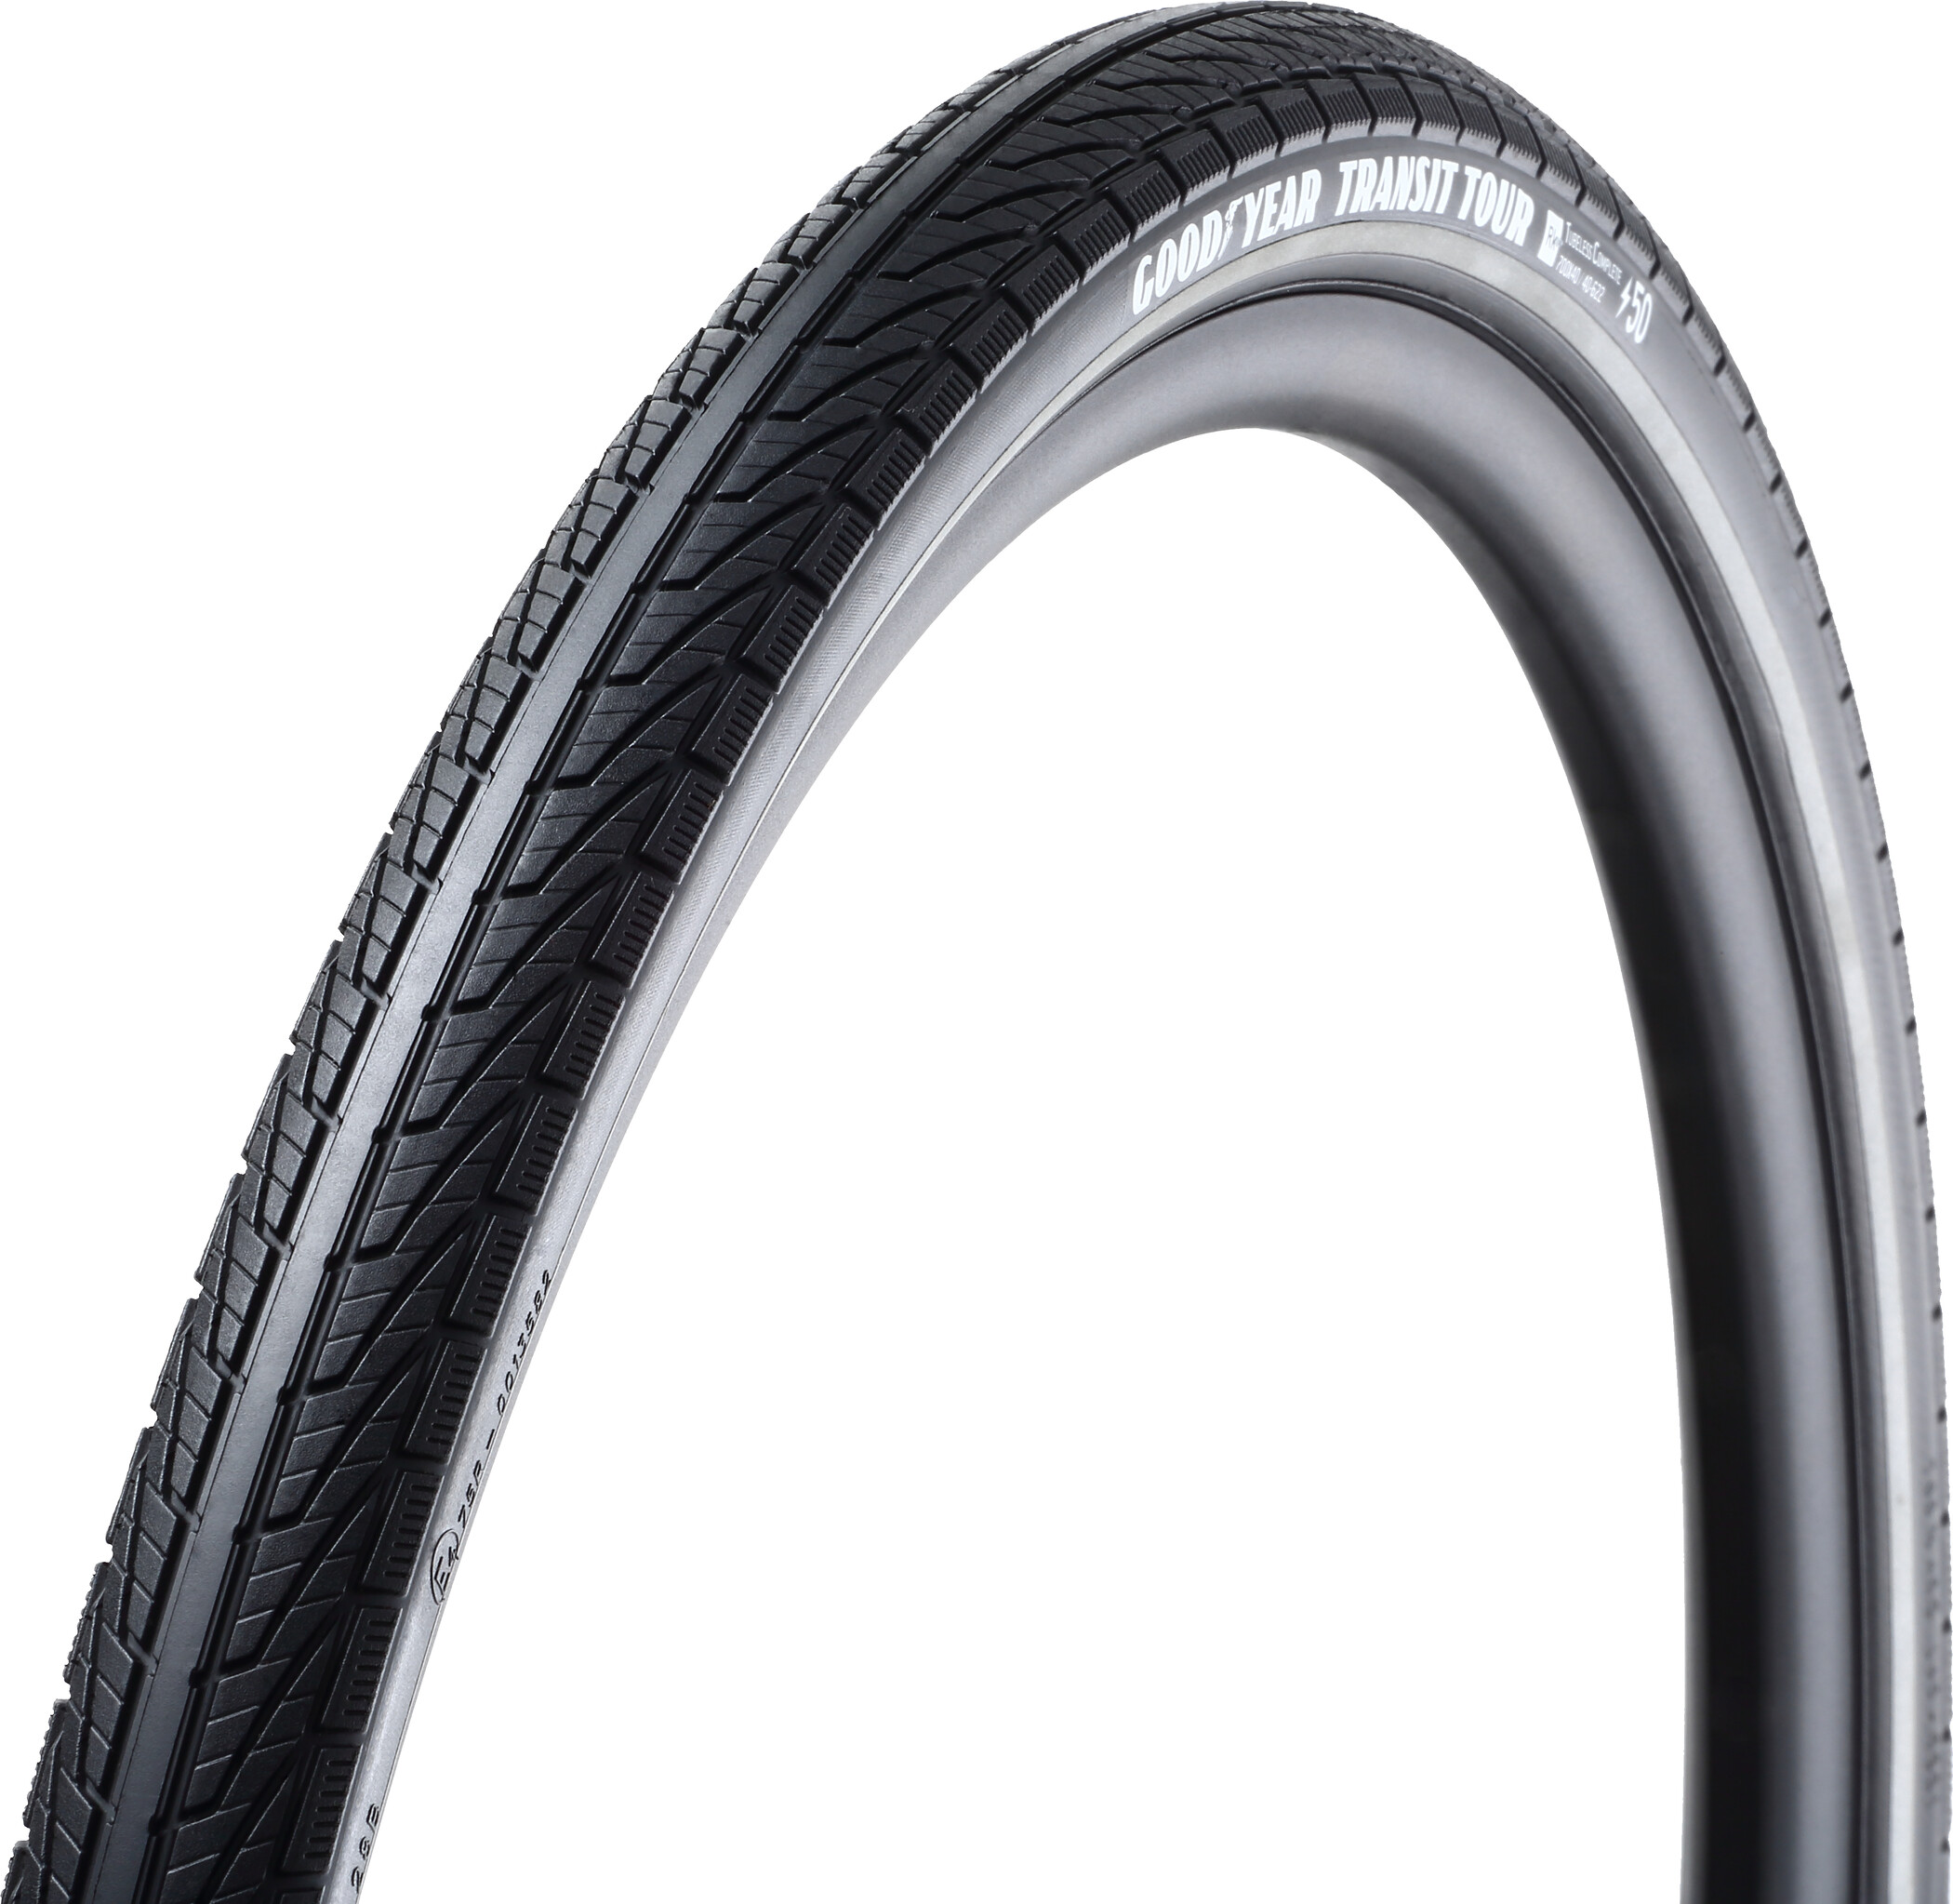 Goodyear Transit Tour Foldedæk 50-584 Tubeless Complete Dynamic Silica4 e50, black reflected (2019)   Tyres